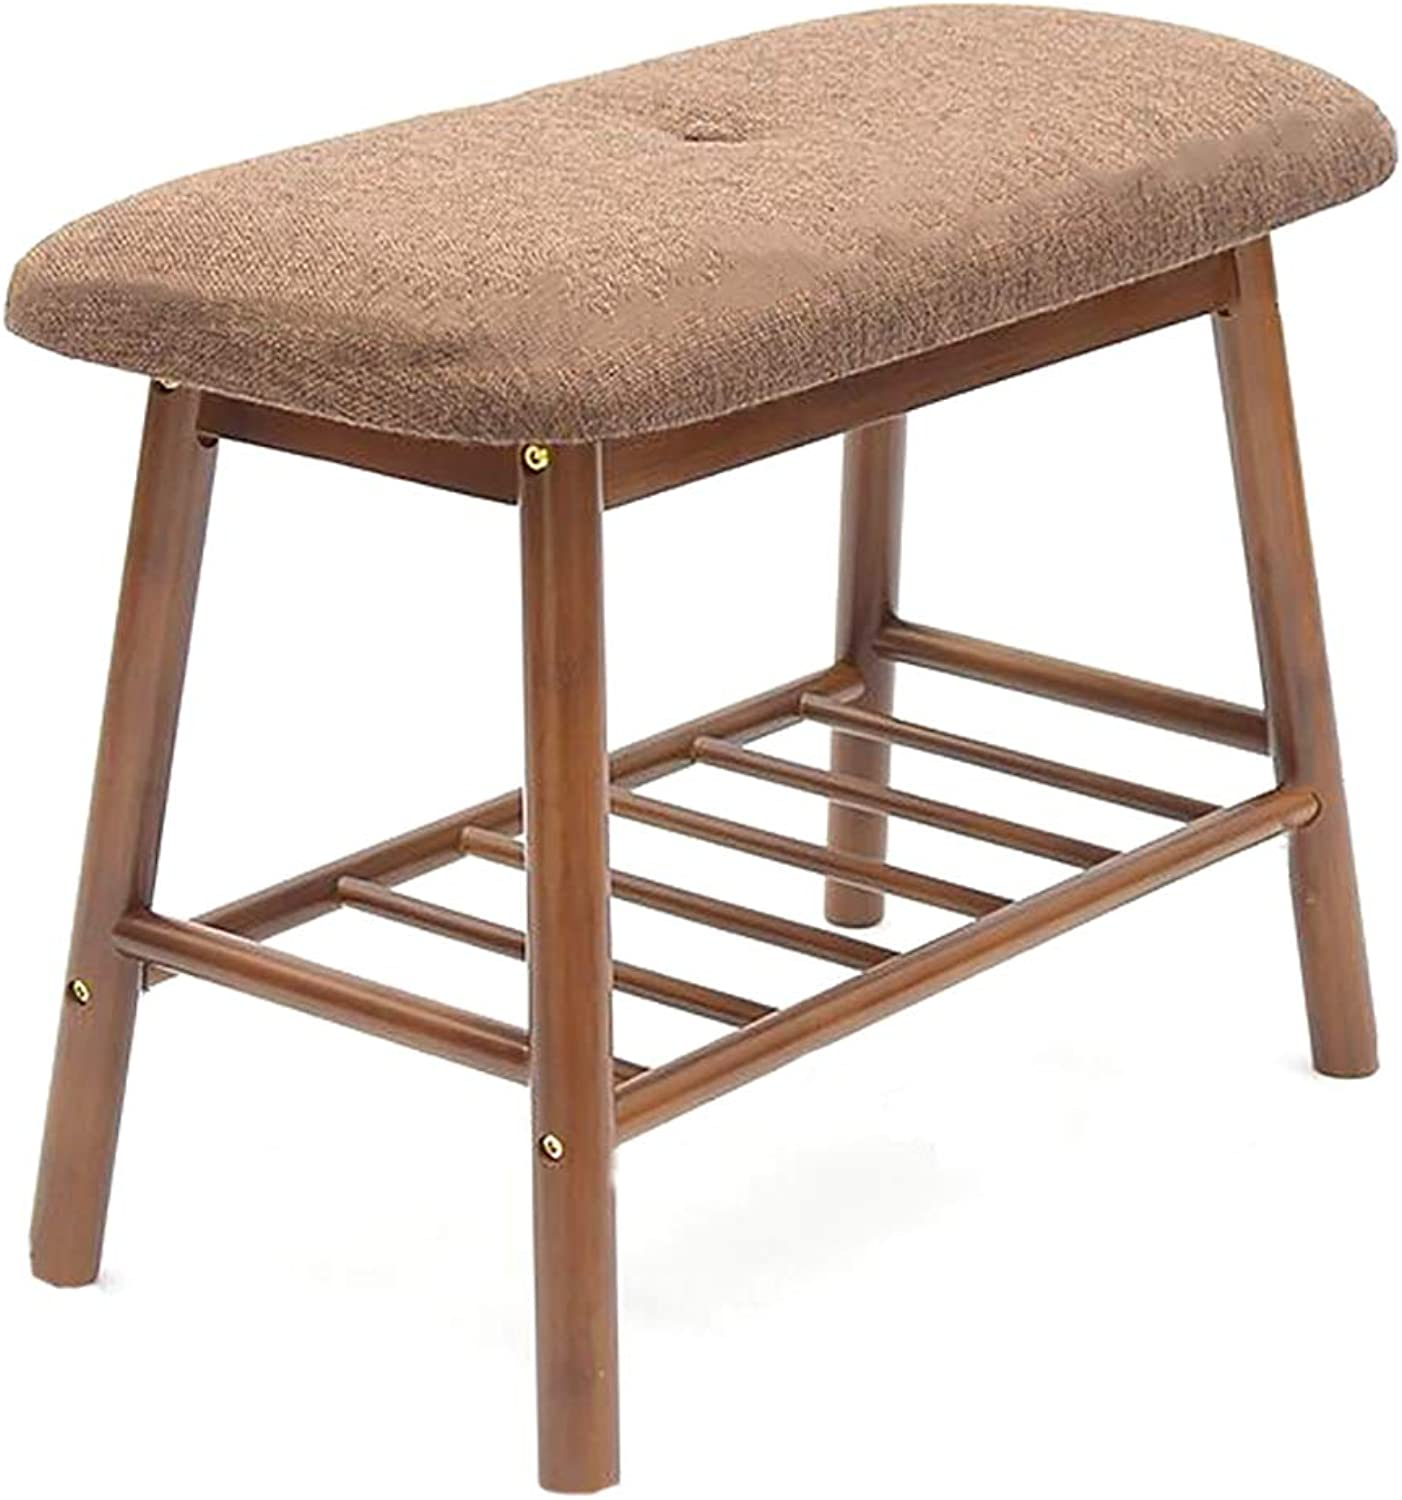 Nordic Entry can sit shoes Rack shoes Stool shoes Storage Bench shoes Bench (color   B, Size   91cm)